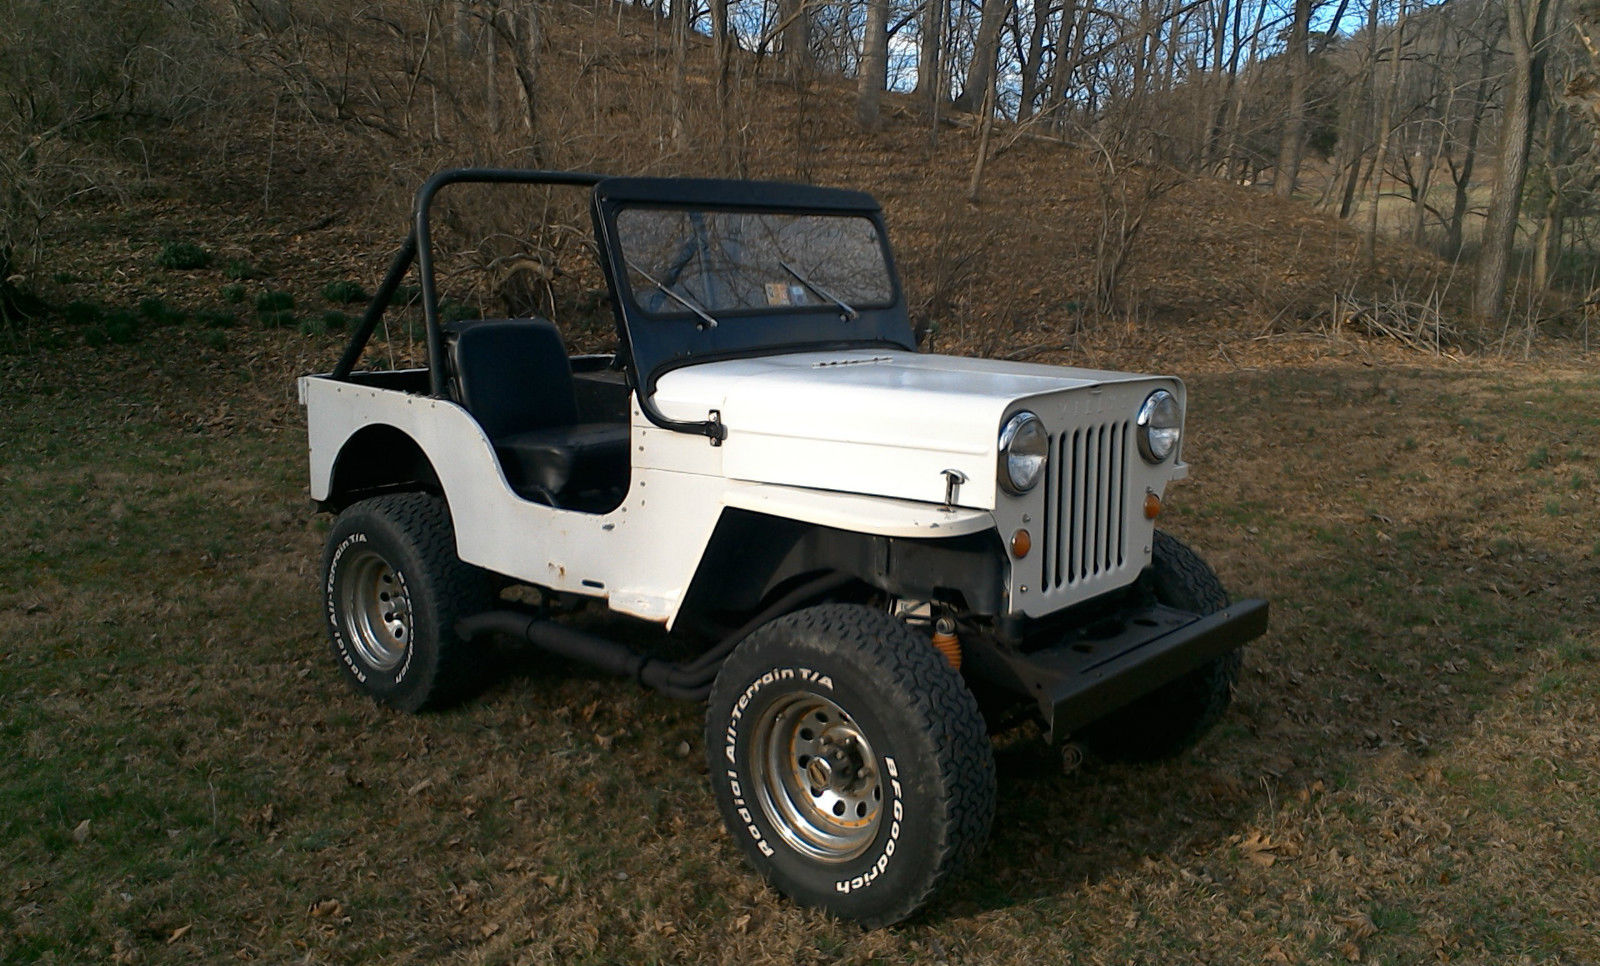 Jeep Cj3a Wiring Diagram. . Wiring Diagram Jeep Cj A Wiring Diagram on